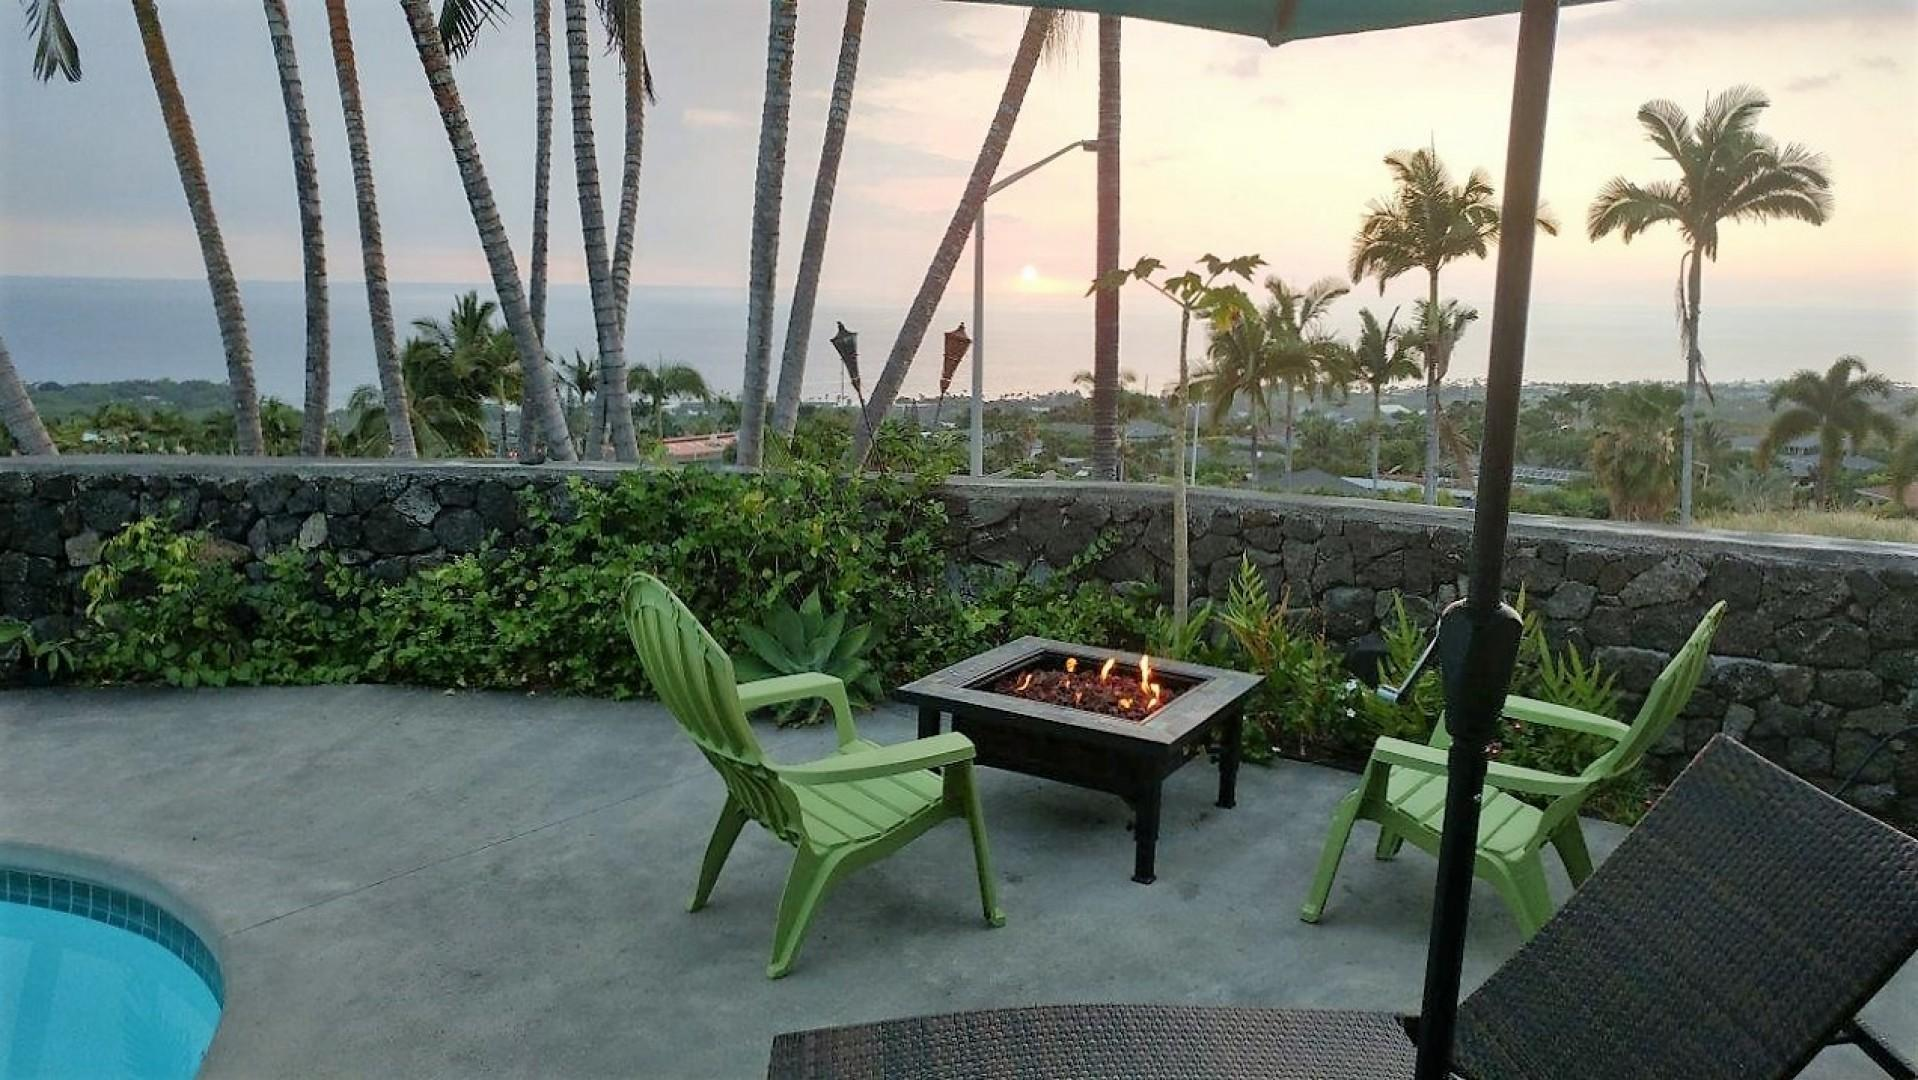 Hang out and relax in the evening by the fire pit.